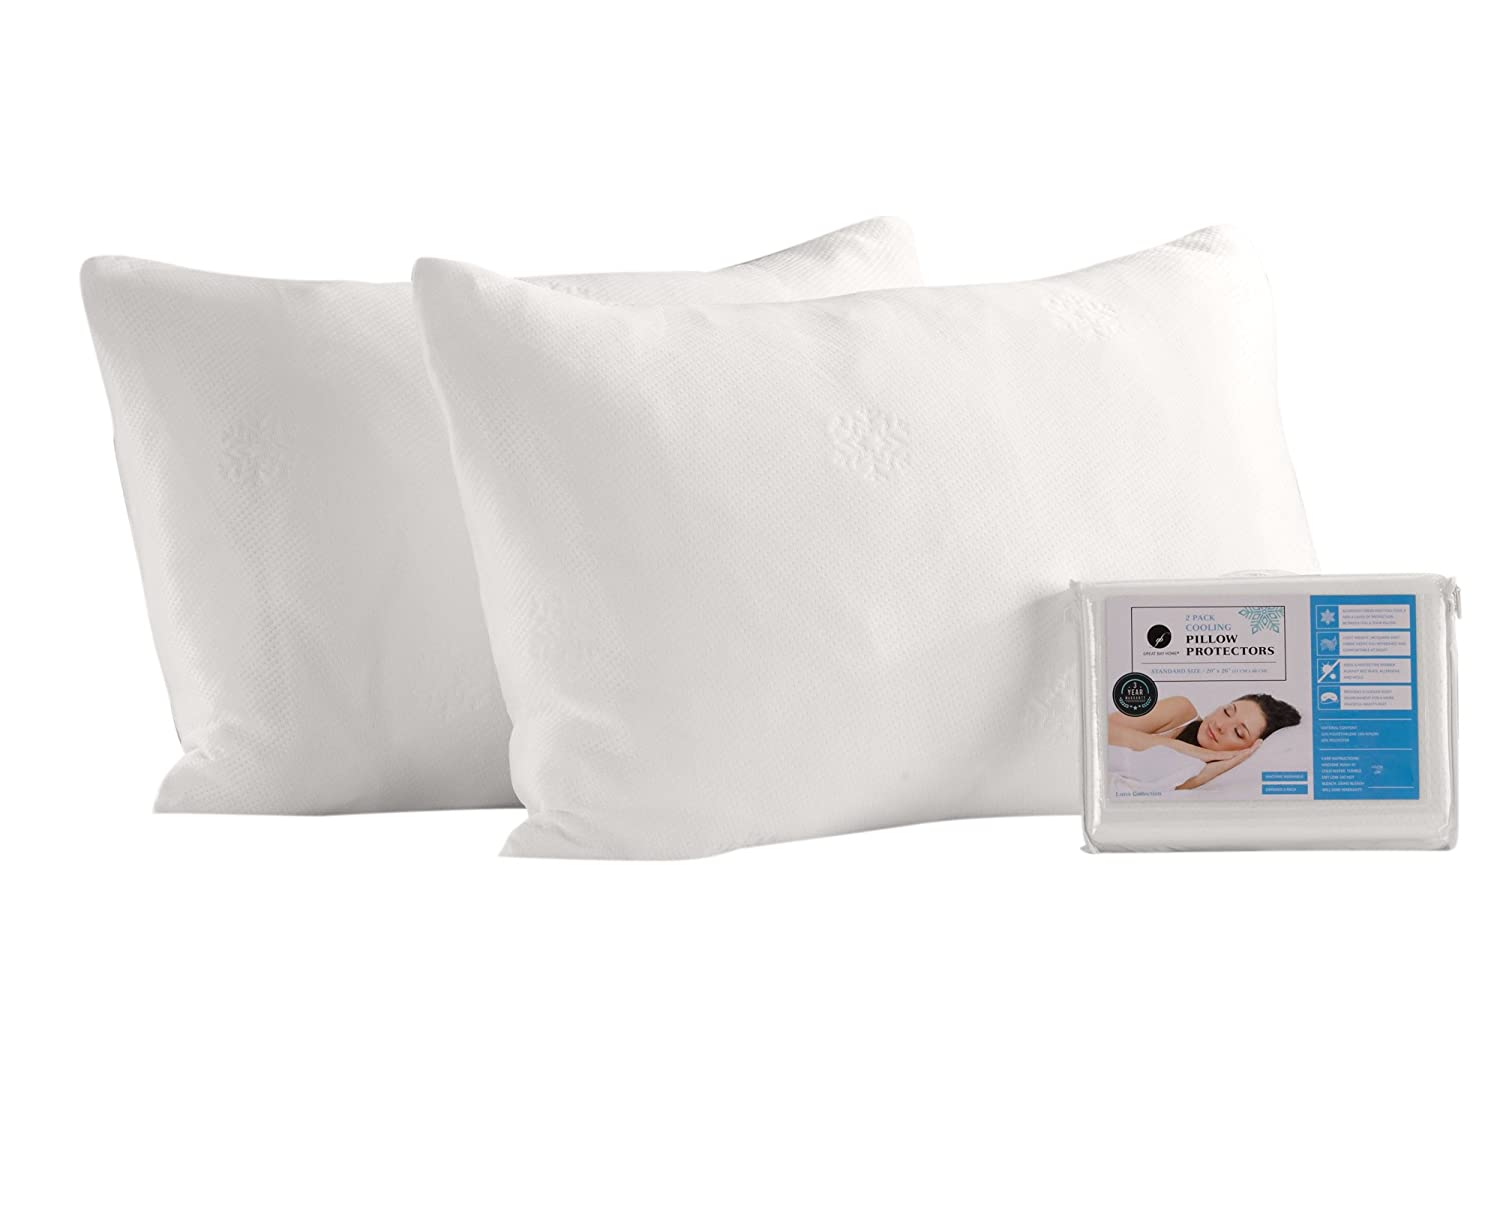 2 Pack Cooling Pillow Protectors. Breathable for Night Sweats. Durable, Machine-Washable, and Zippered. (King)